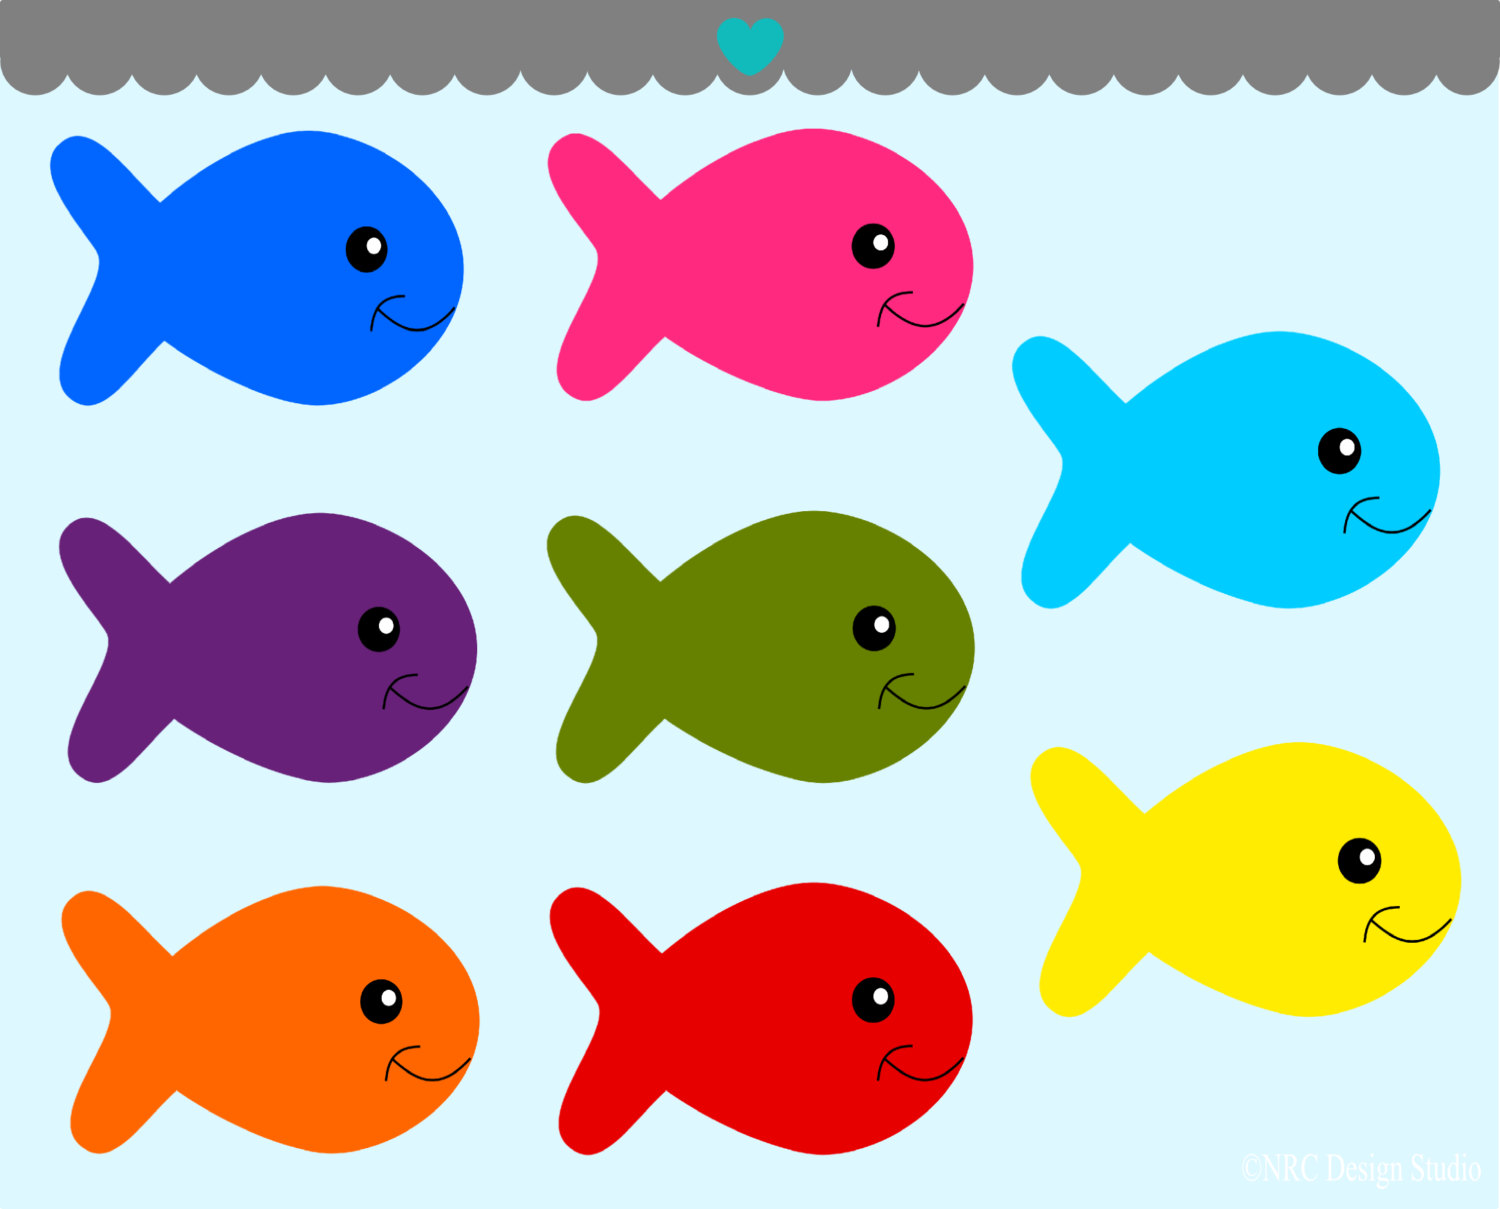 Clipart of clipart clip art library library Clipart Panda - Free Clipart Images clip art library library